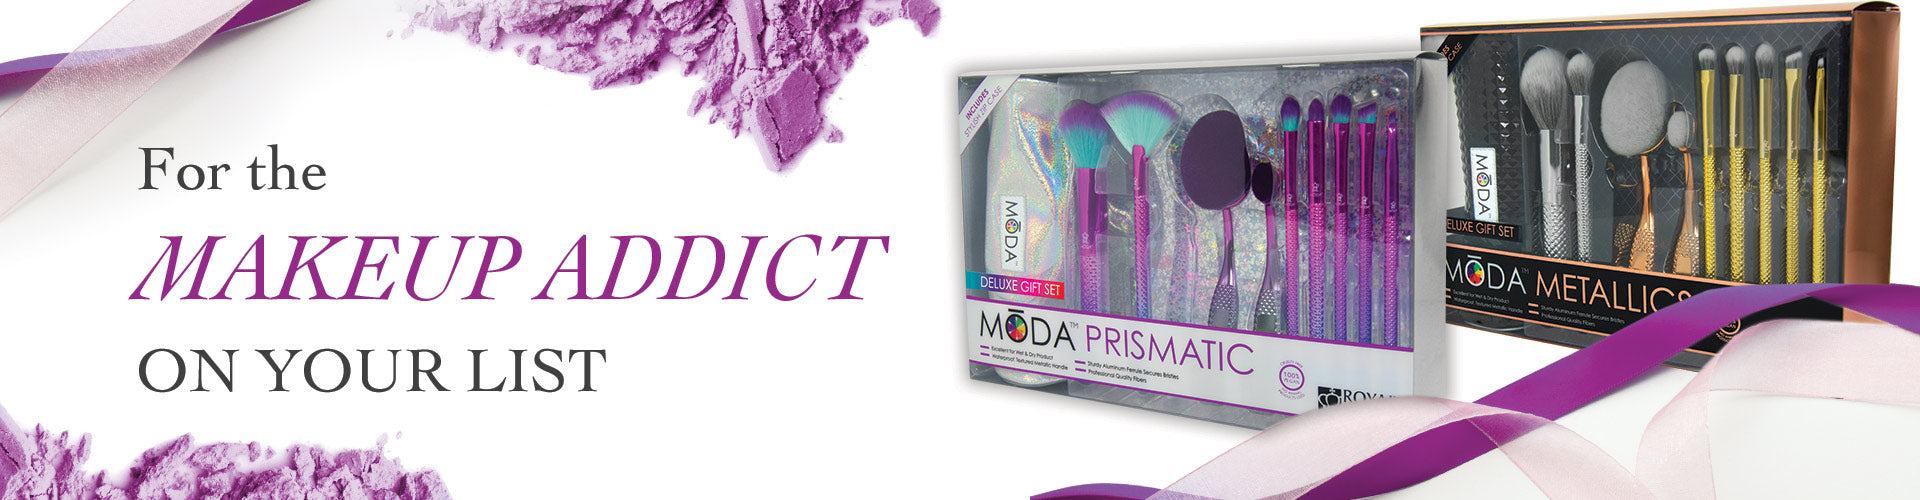 For the makeup addict on your list - MODA Deluxe Gift Kits